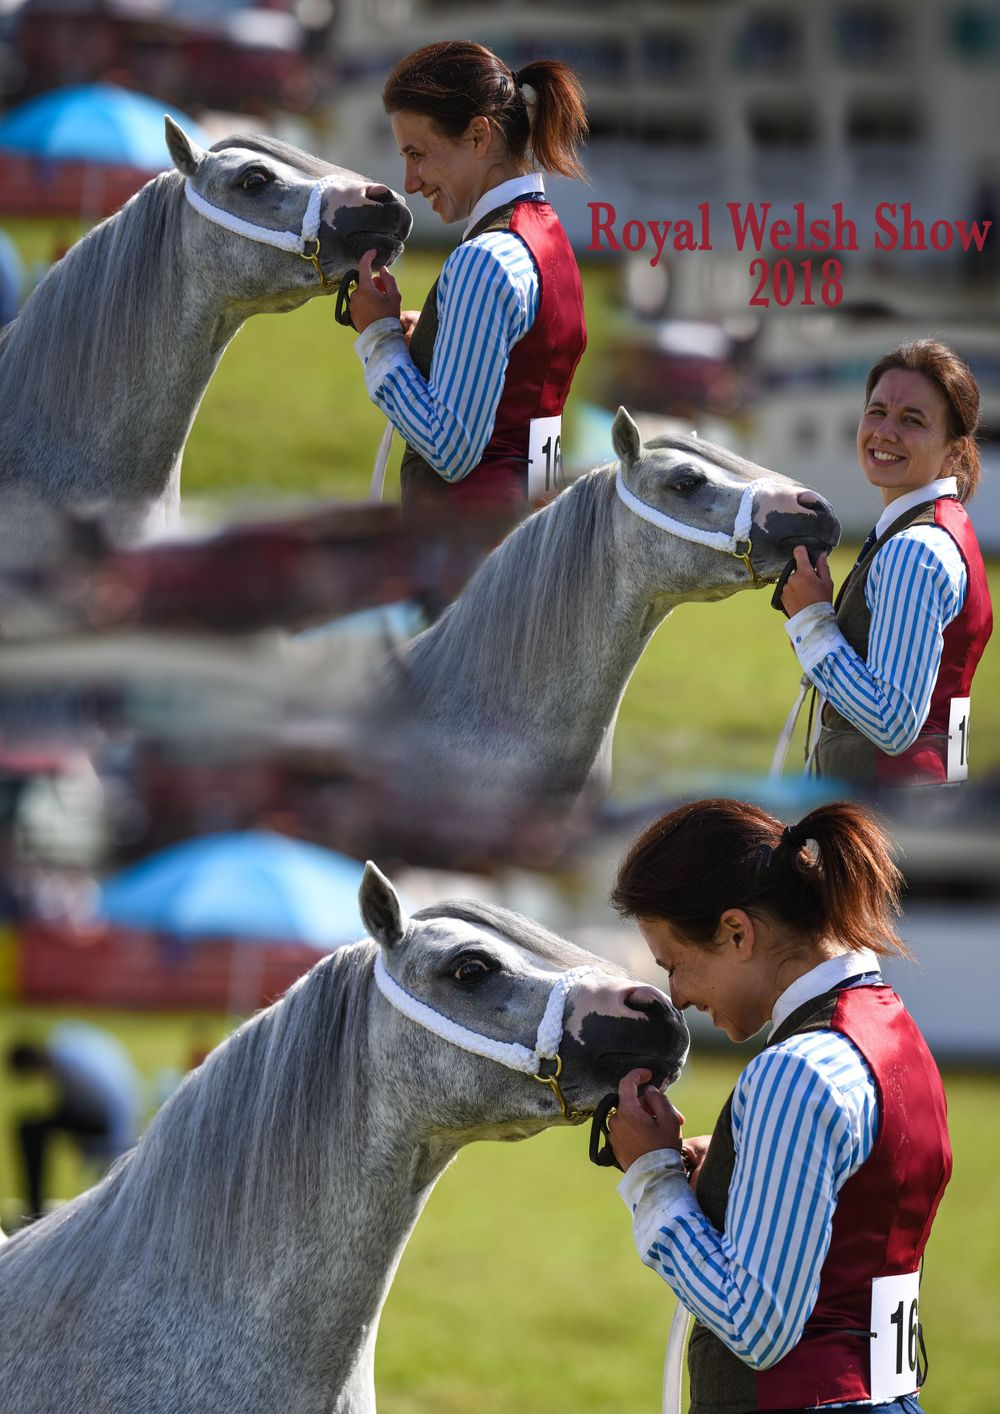 Royal Welsh Show Photographer